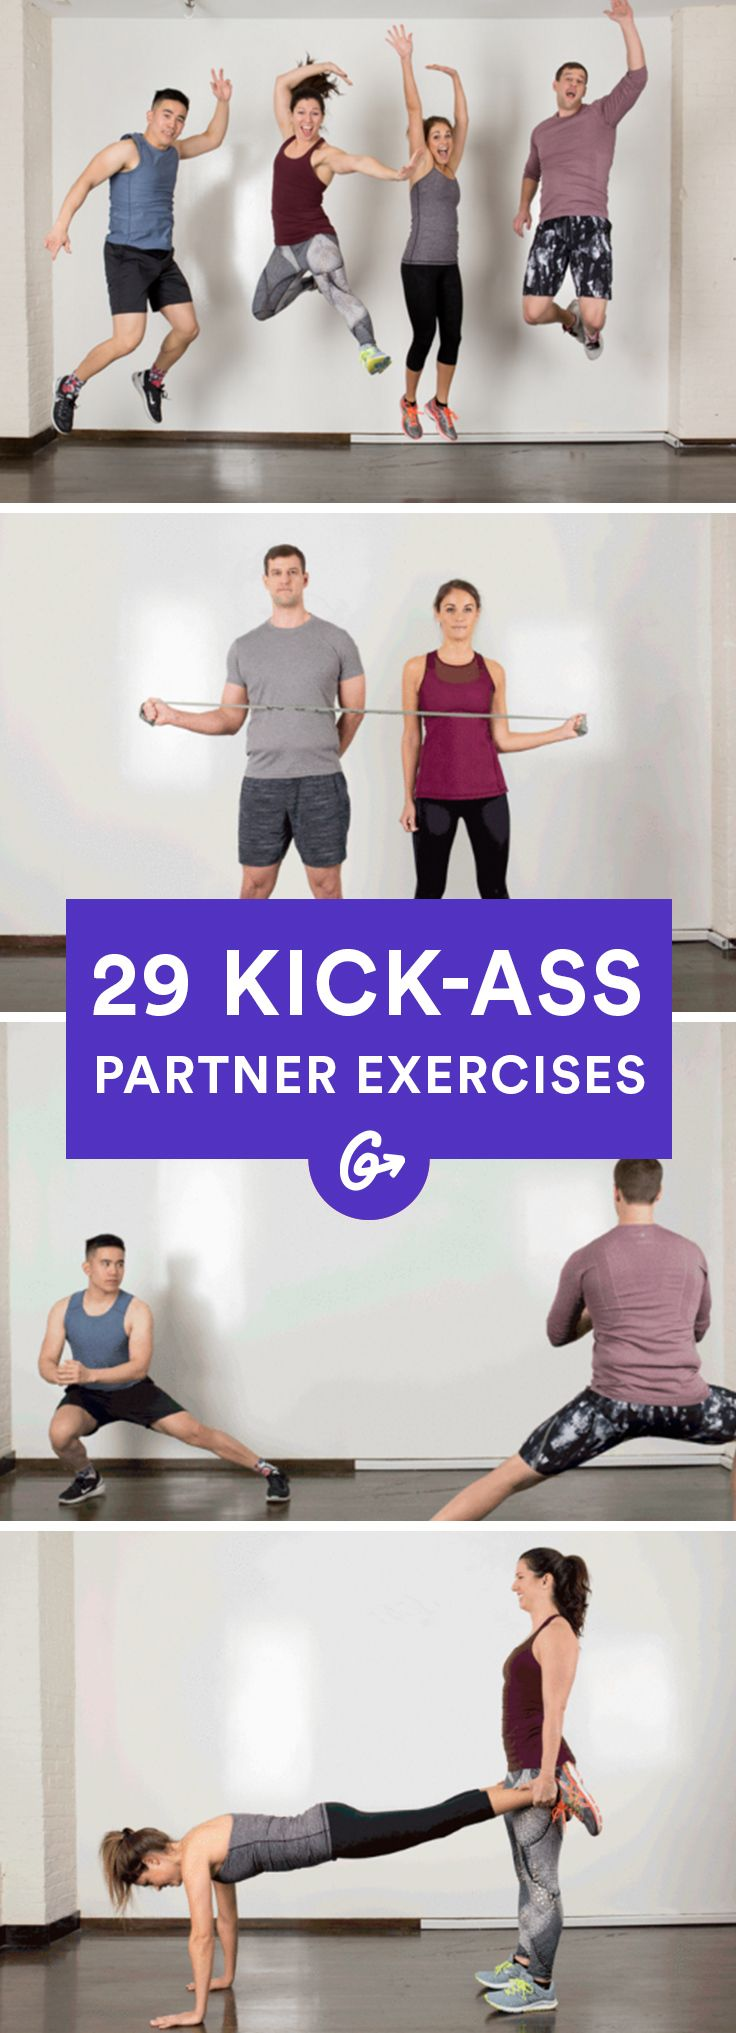 Because everything is better with friends, especially working out. http://greatist.com/fitness/35-kick-ass-partner-exercises